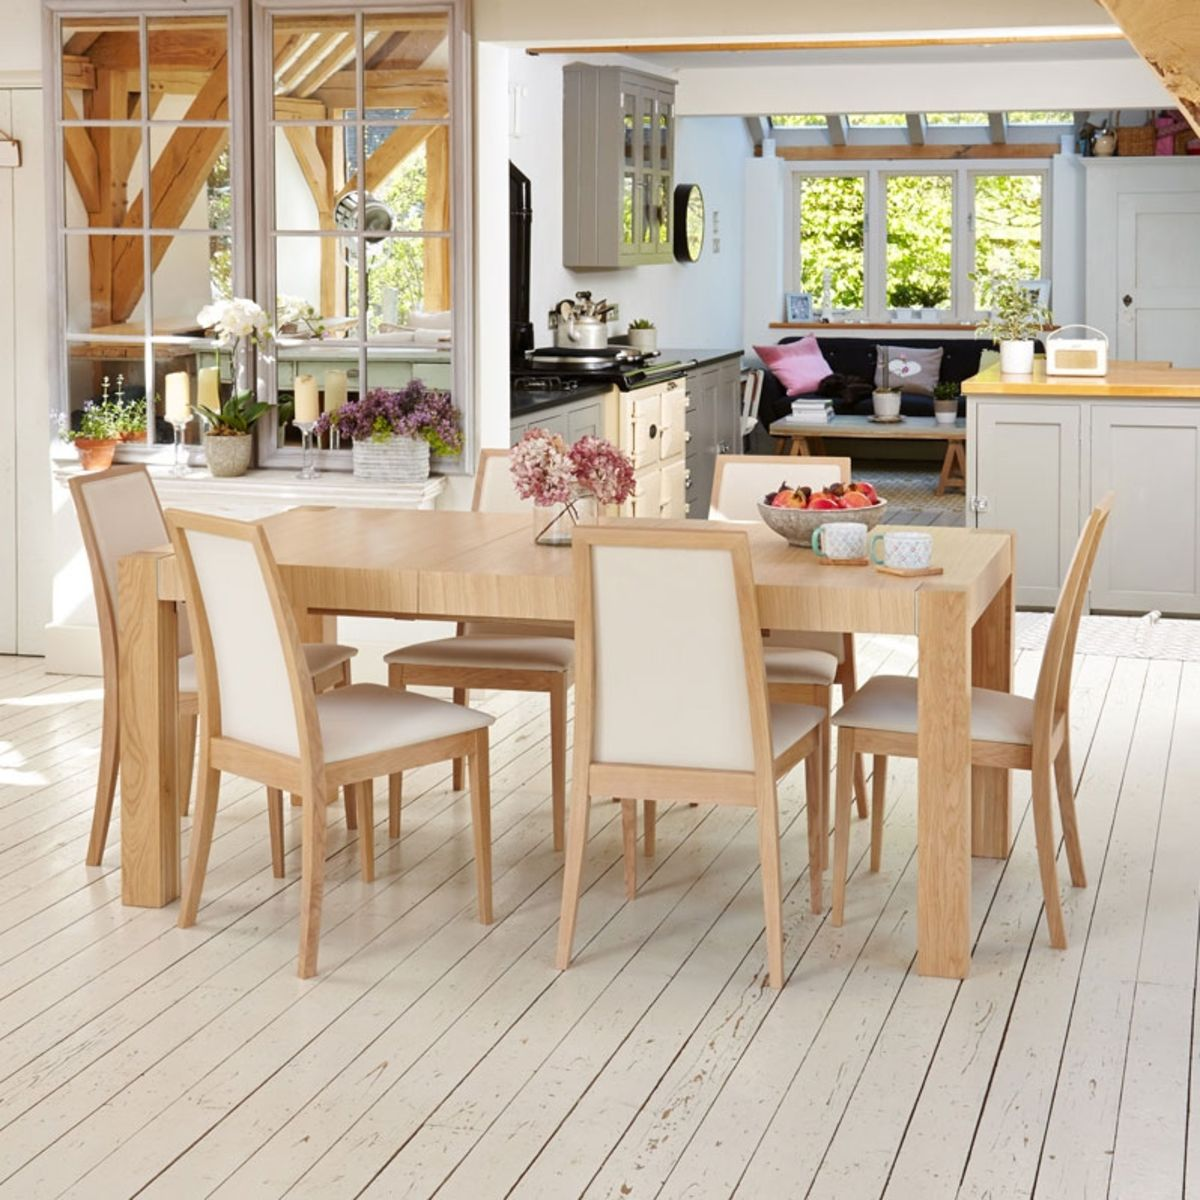 Planning the perfect dining space